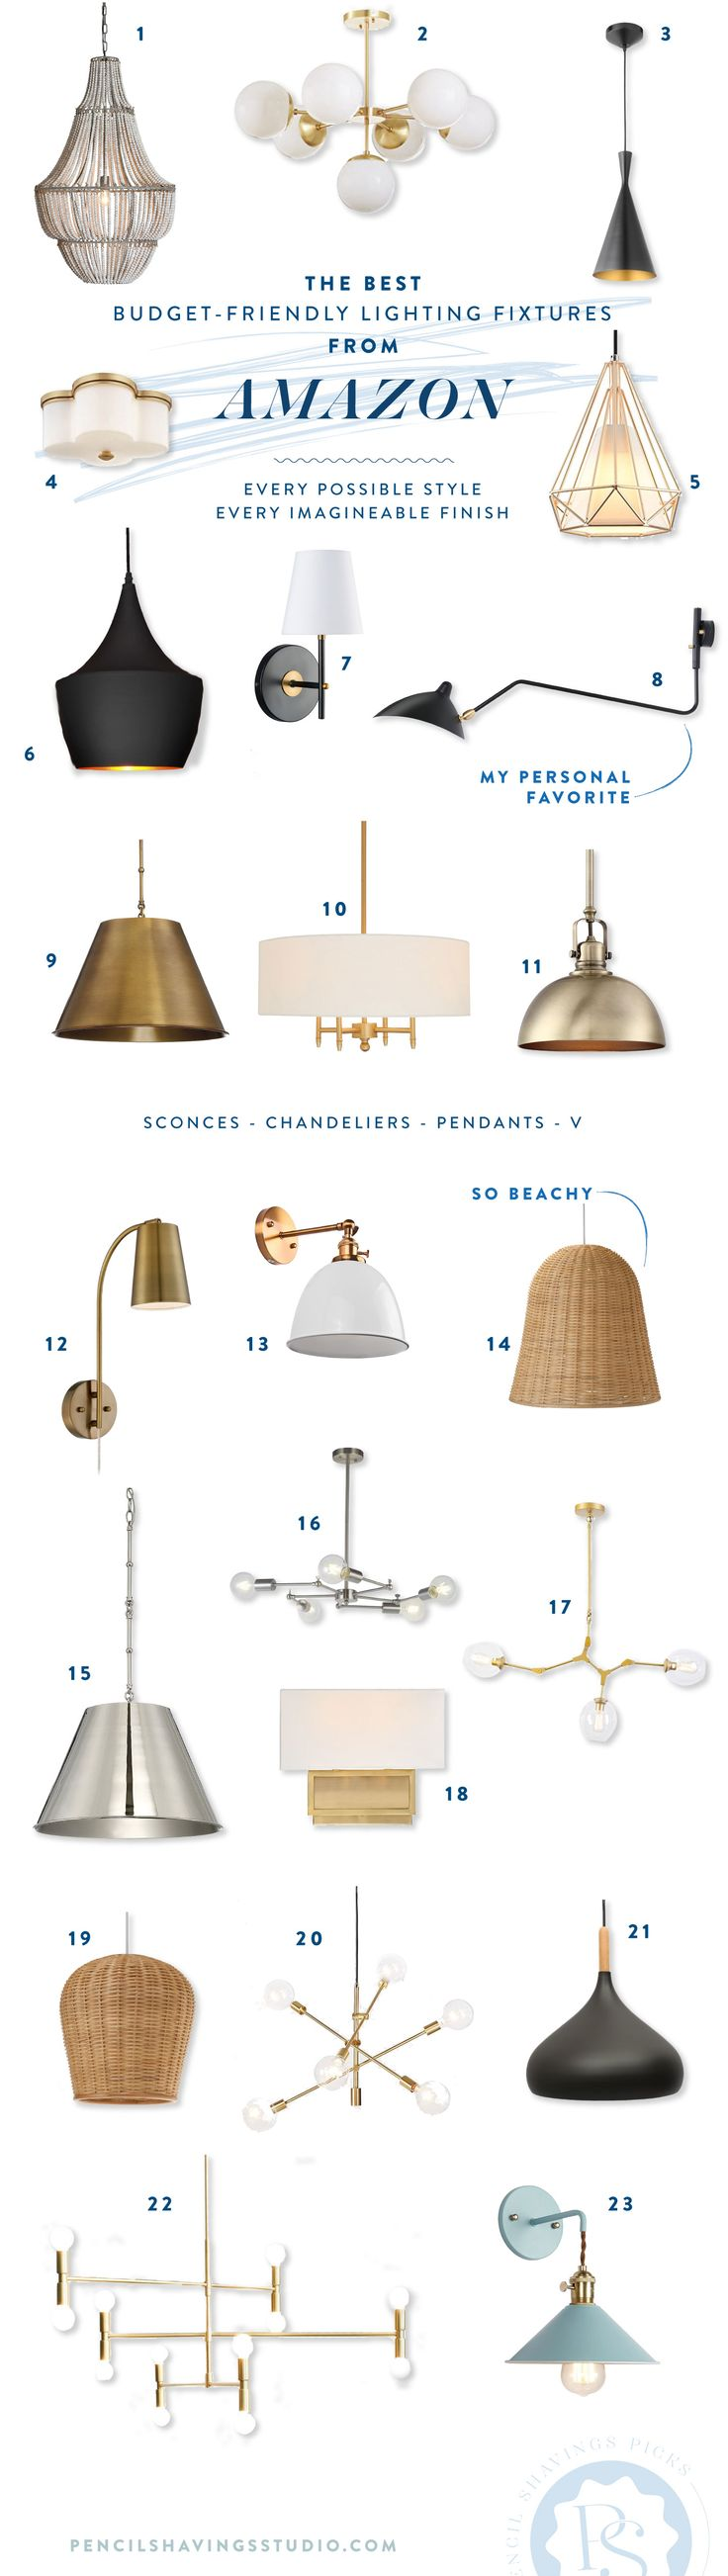 23 budget friendly lighting fixtures from Amazon, in a variety of styles and finishes. #amazonprime #amazon #lighting #budgetlighting #hardwiredlighting #chandeliers #pendants #wallmount #flushmount www.pencilshavingsstudio.com